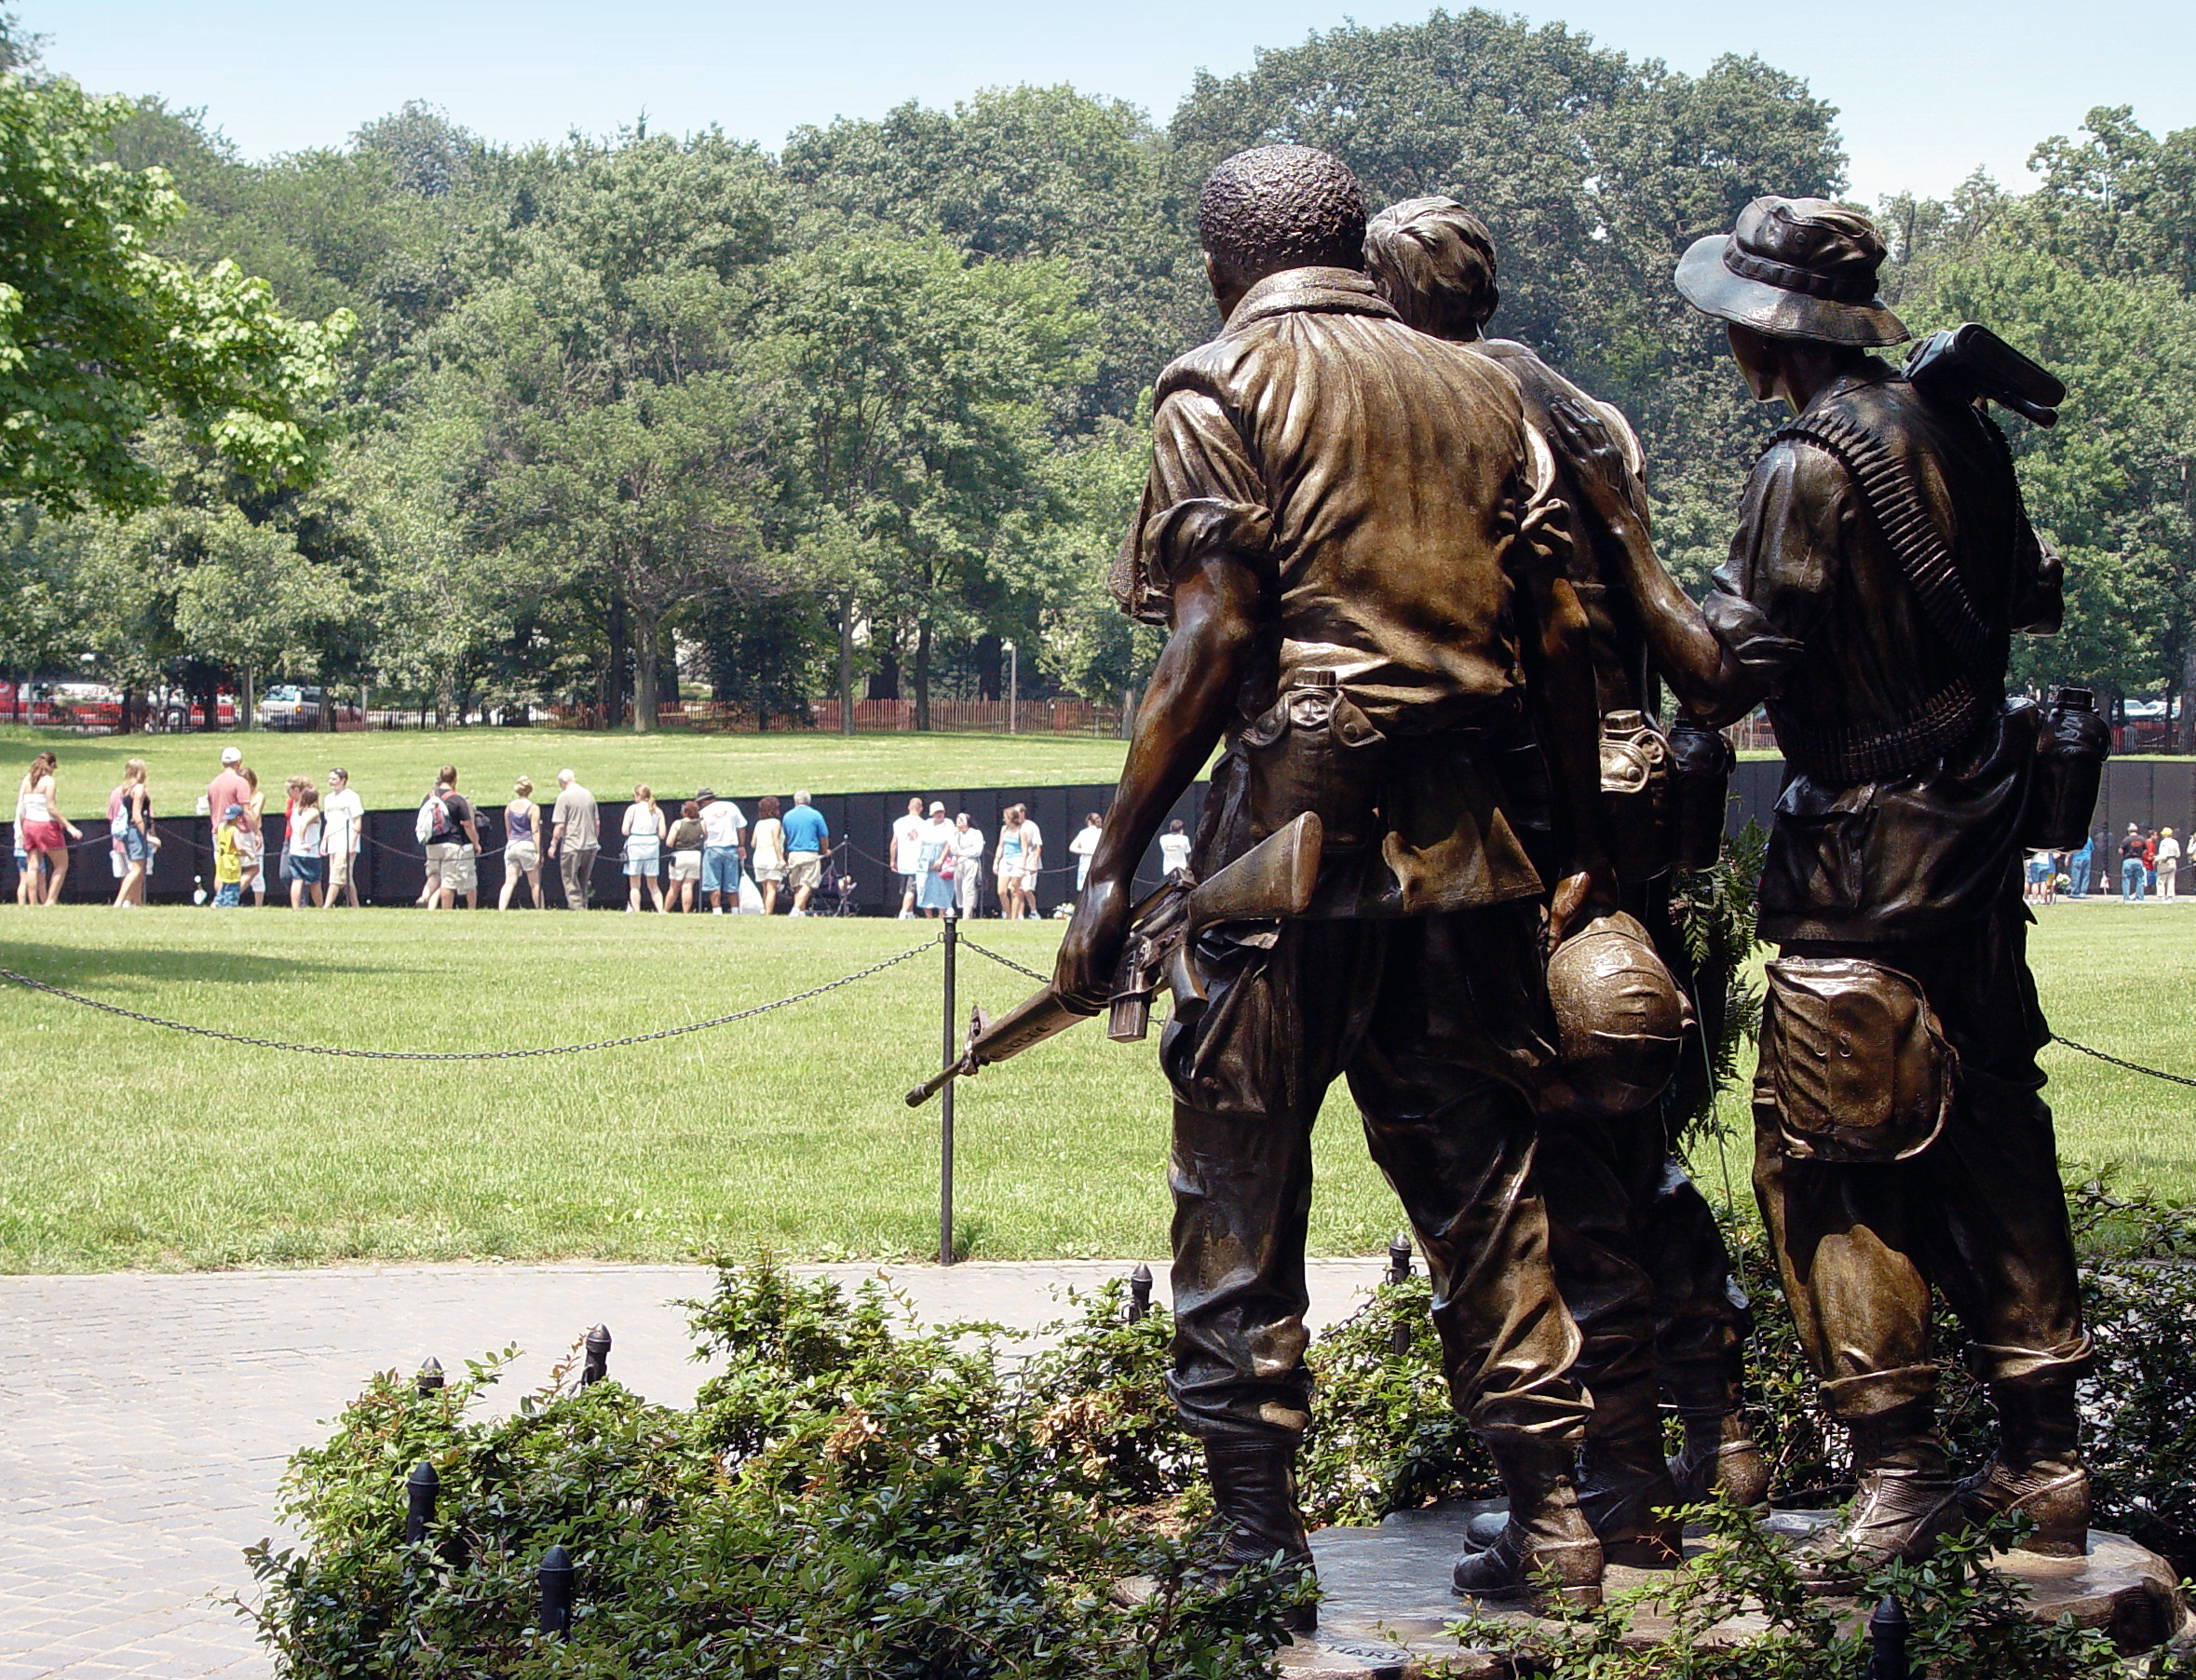 Vietnam Veterans Memorial. Photo courtesy: https://www.flickr.com/photos/snoshuu/368444407/